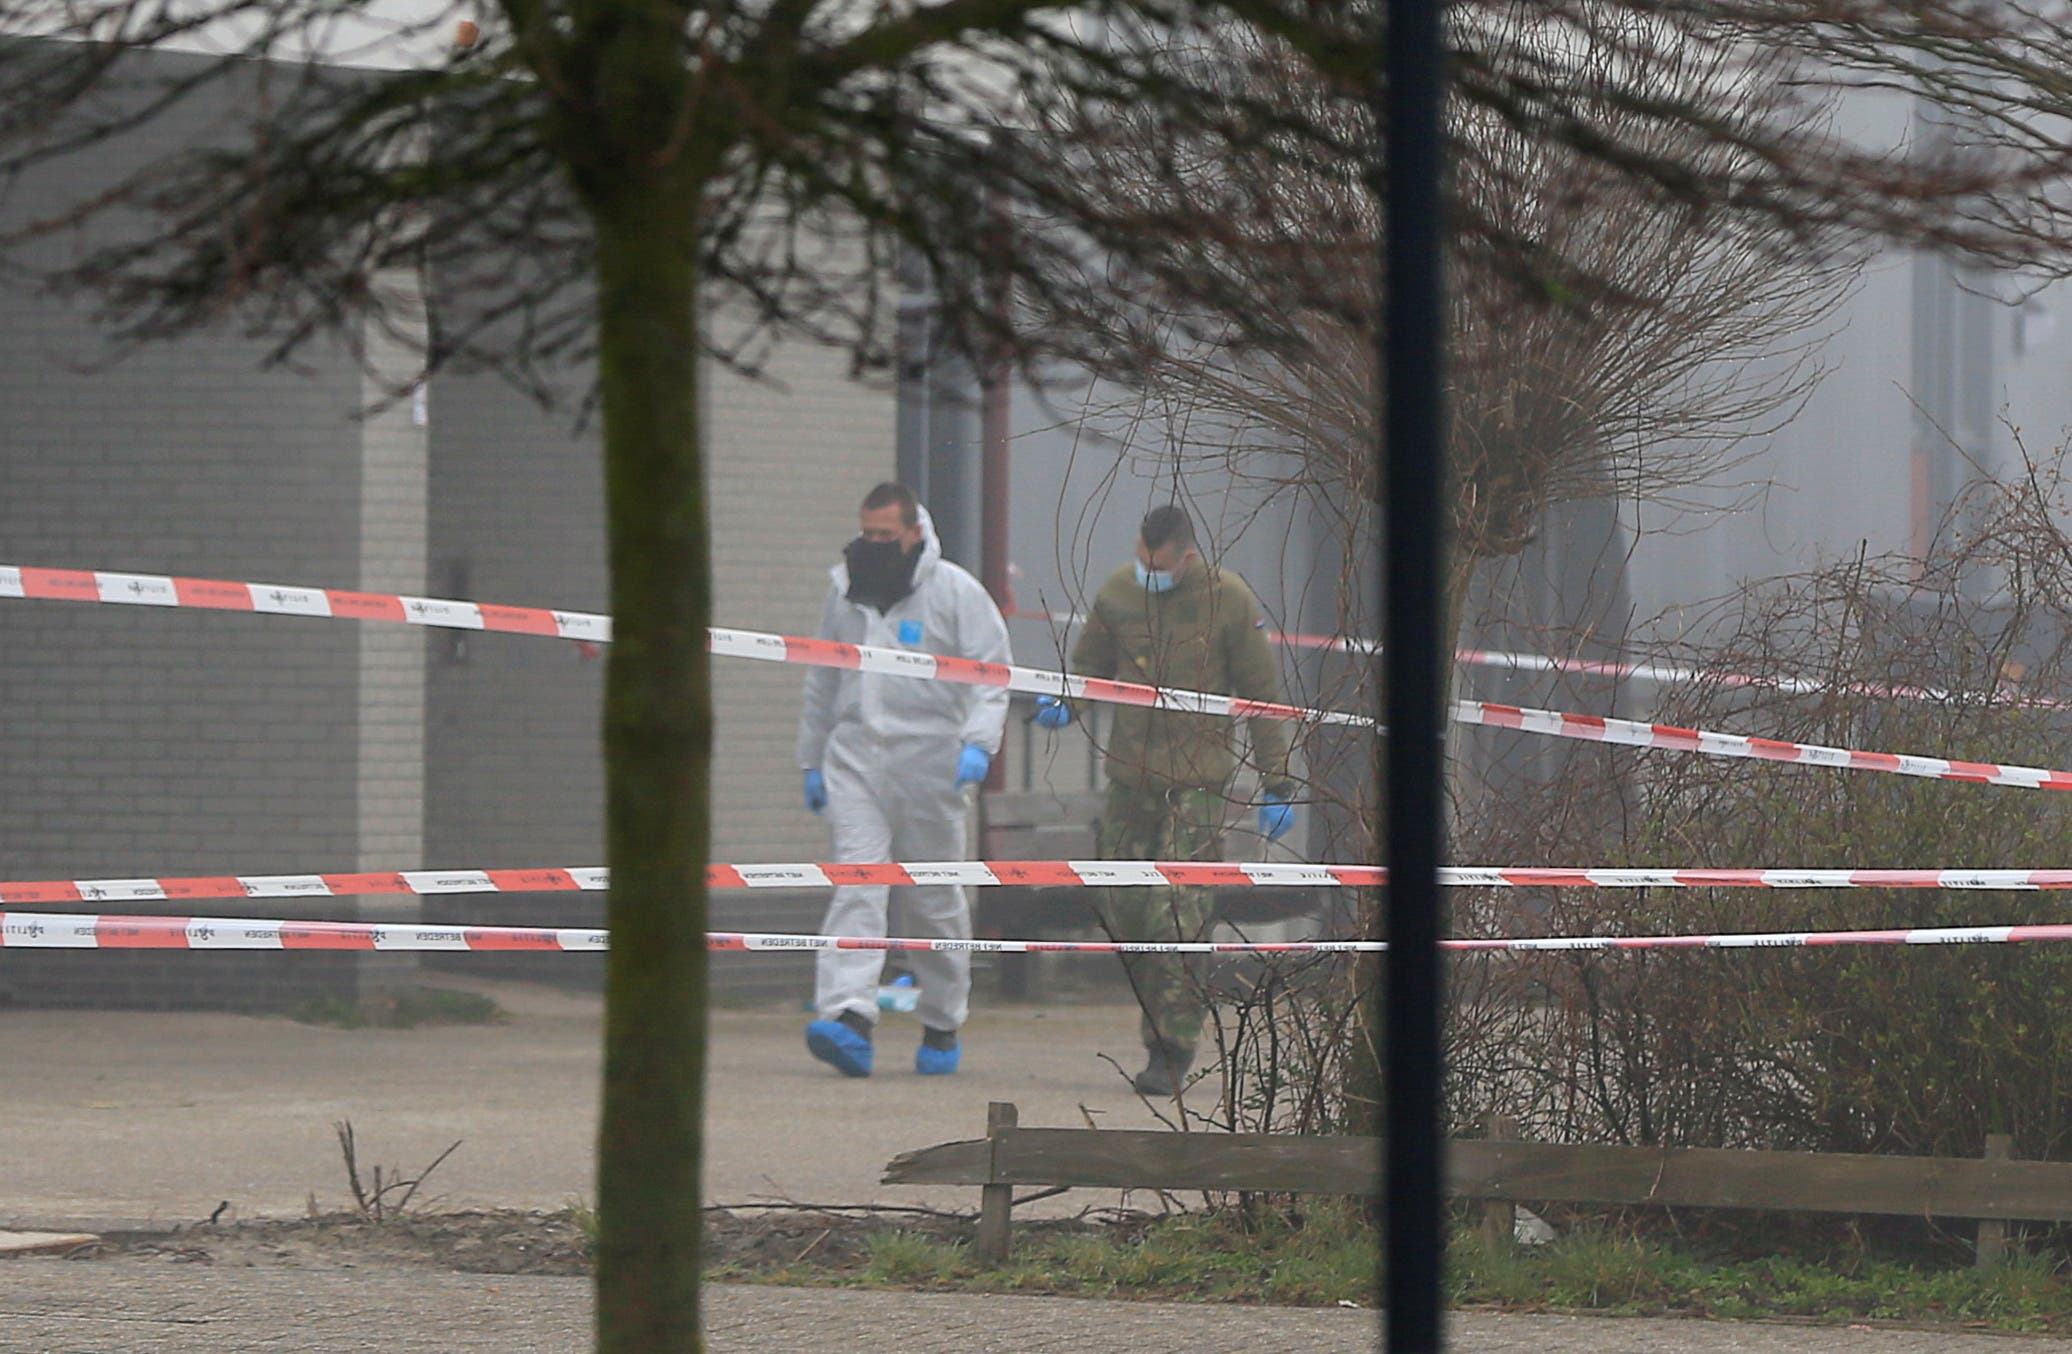 Emergency responders secure the area at the scene of an explosion at a coronavirus disease (COVID-19) testing location in Bovenkarspel, near Amsterdam. (Reuters)